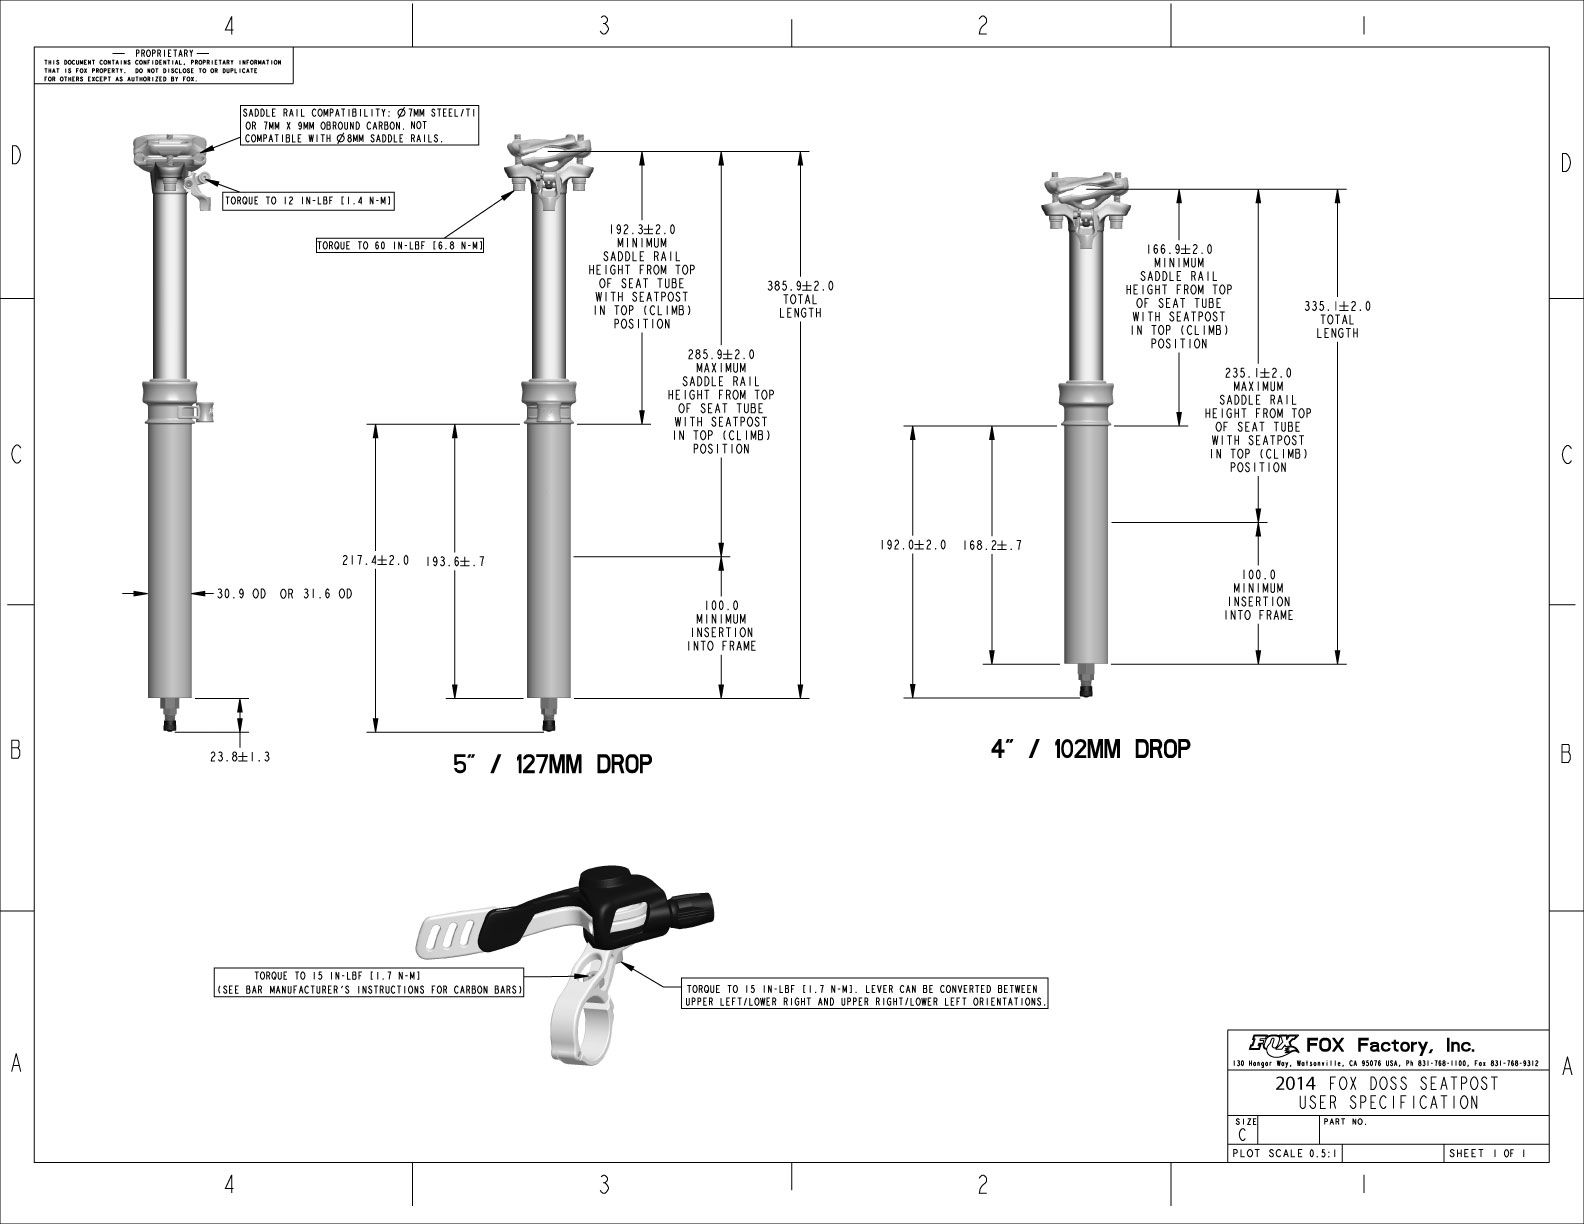 Doss Adjustable Height Seatpost User Specifications